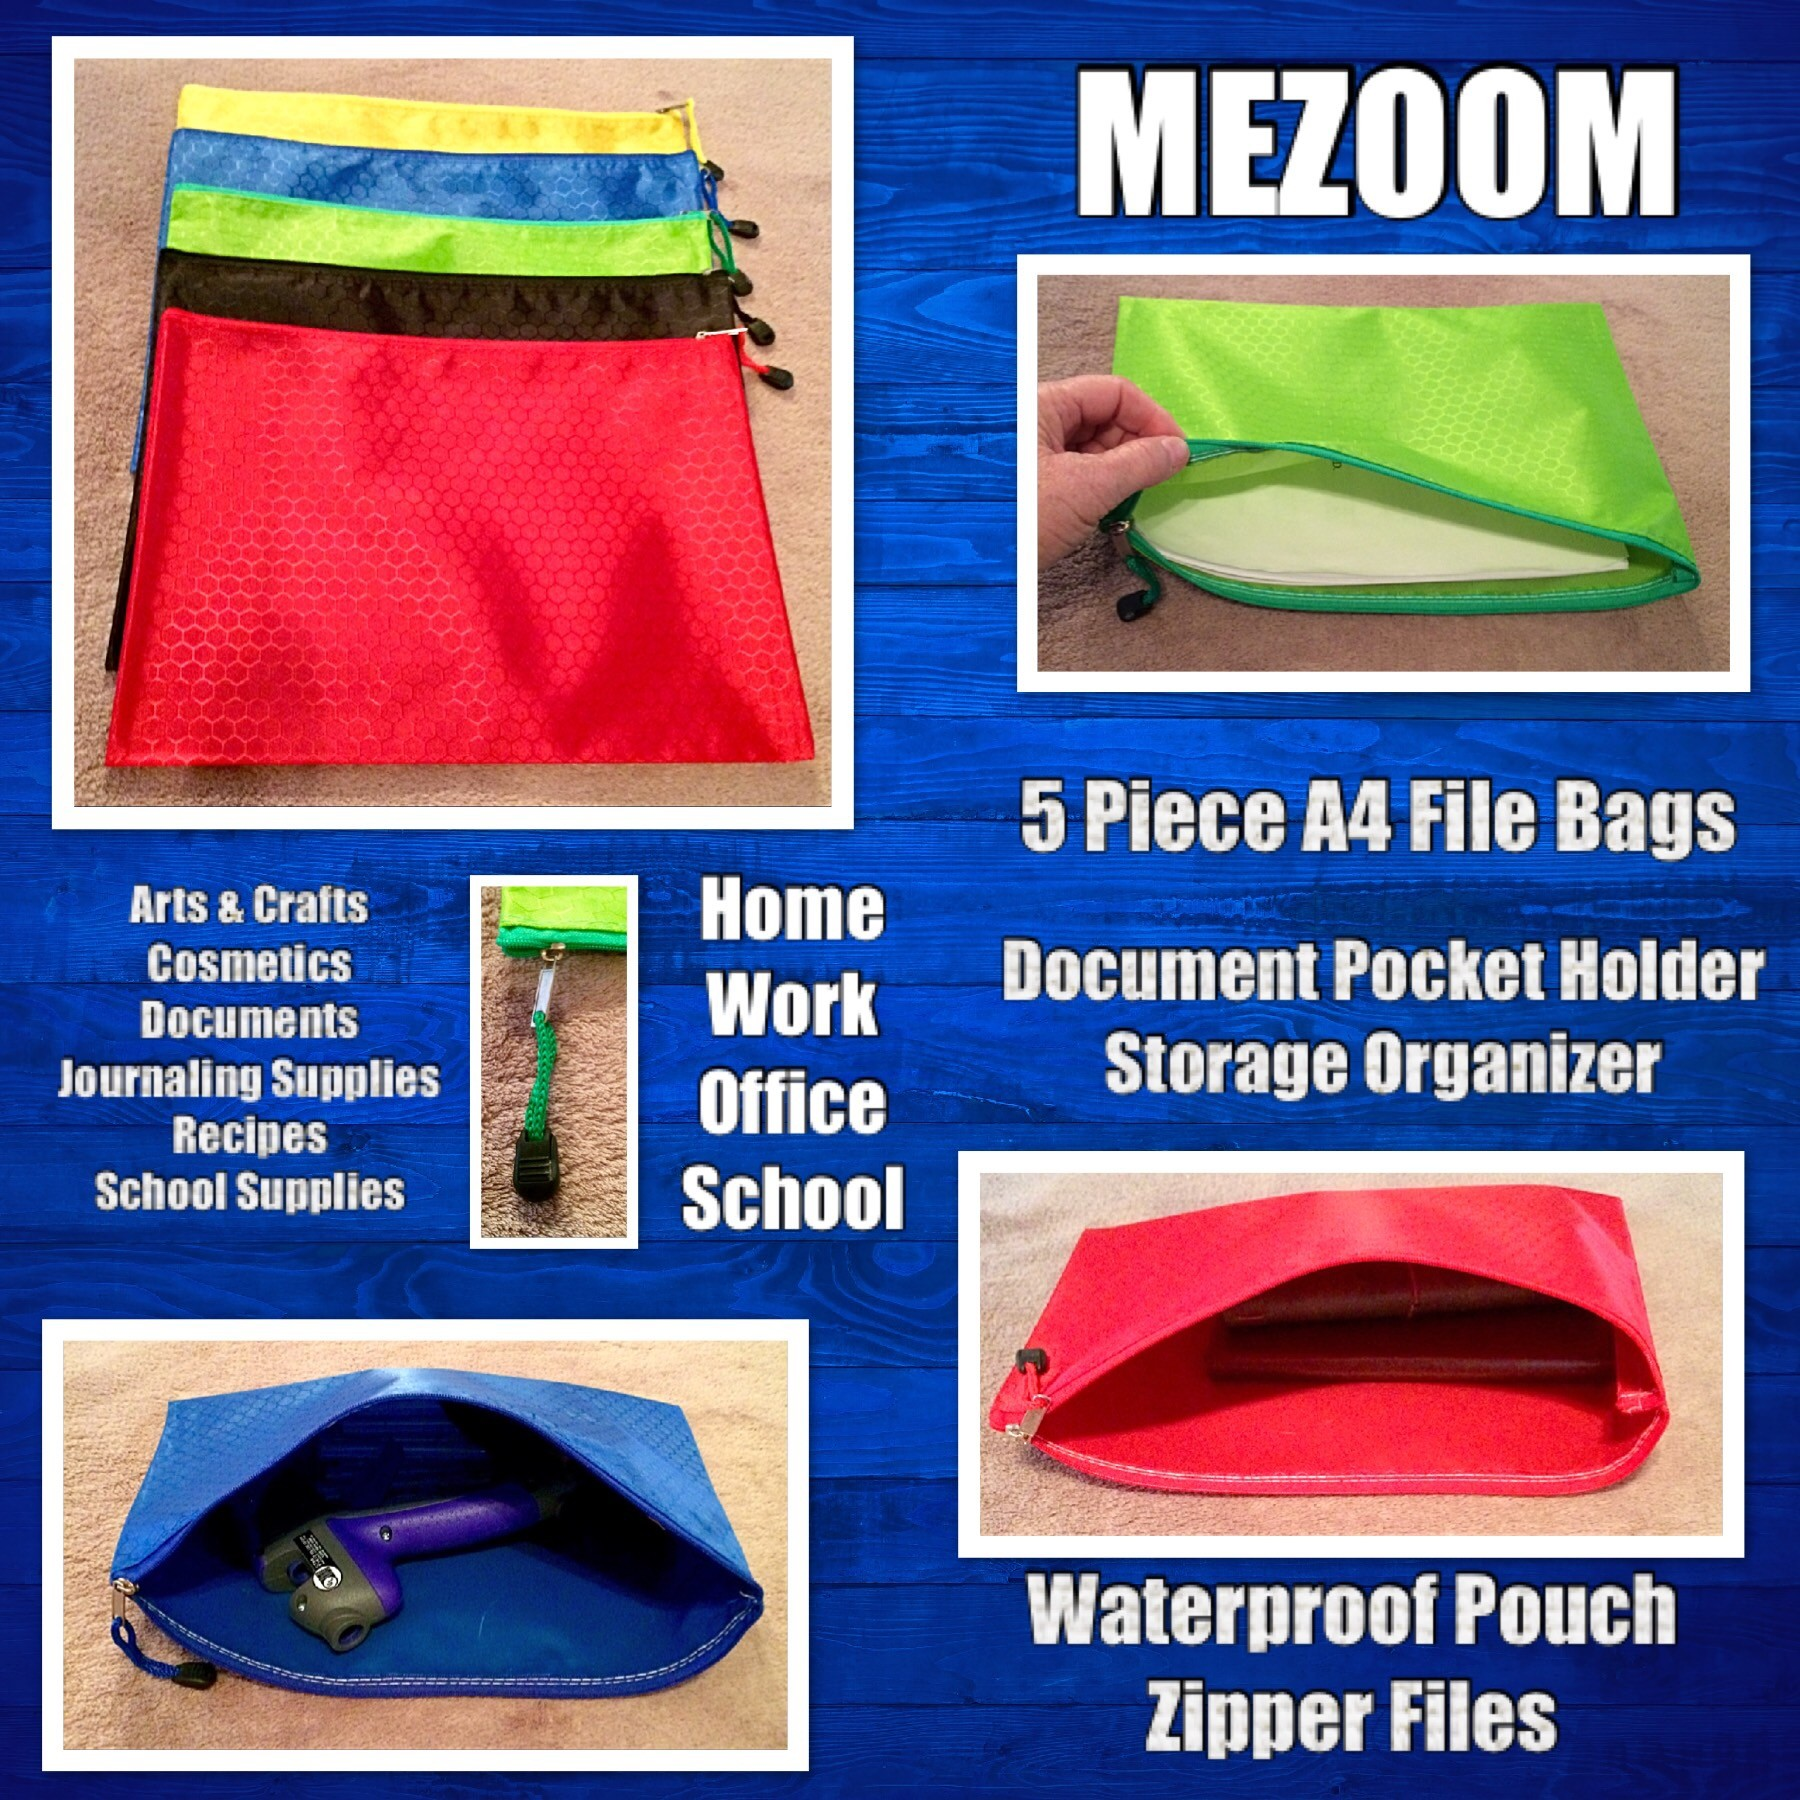 MEZOOM 5 Pcs A4 File Bags Document Pocket Holder Storage Organizer Waterproof Pouch Zipper Files Category Bag For Cosmetics Offices Stationery